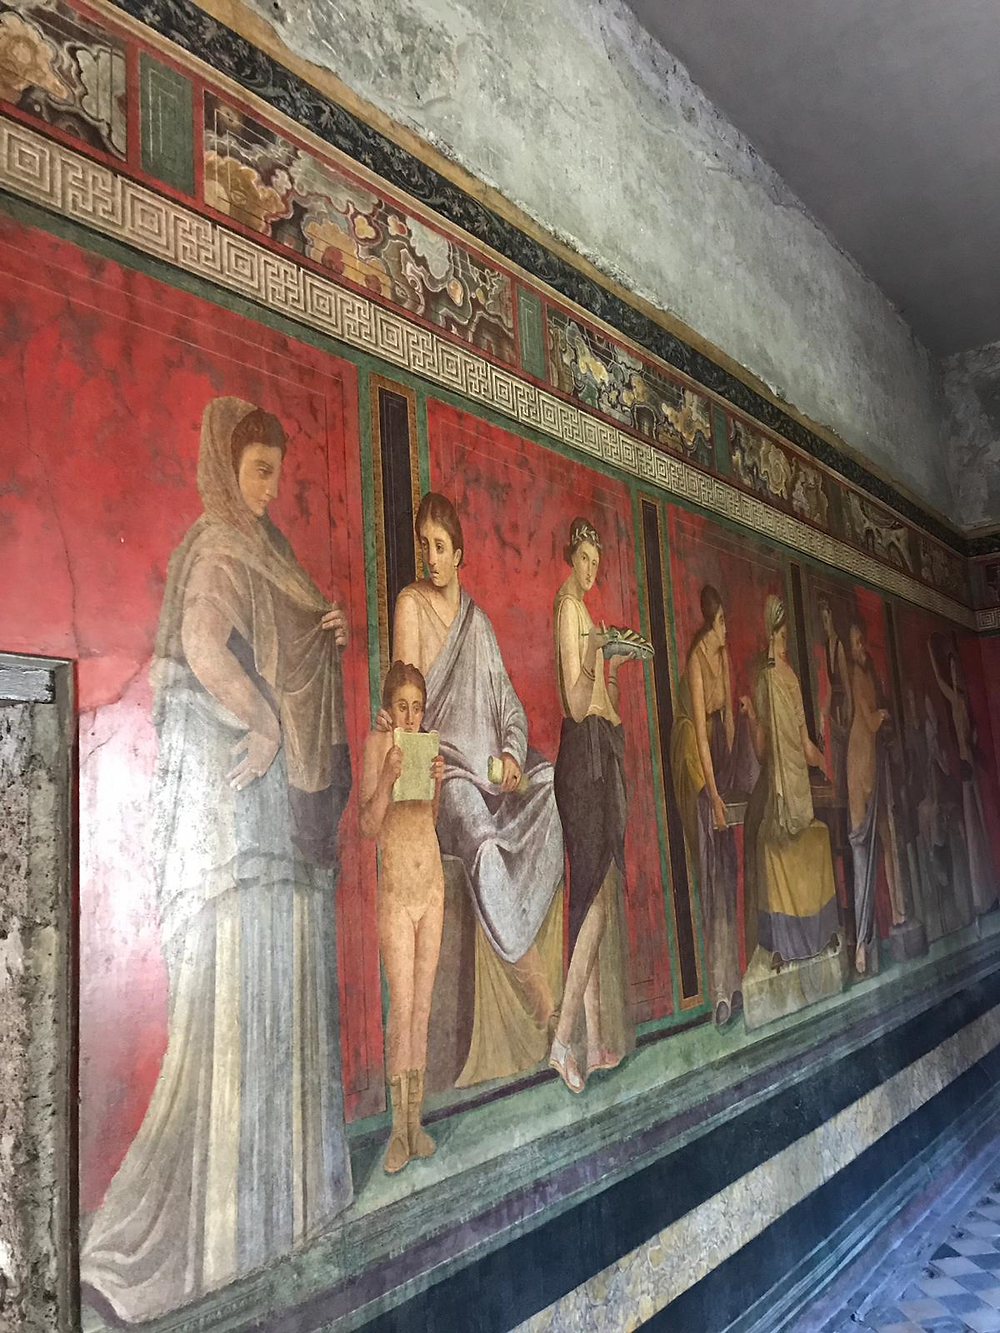 The frescoes of the Villa of the Mysteries